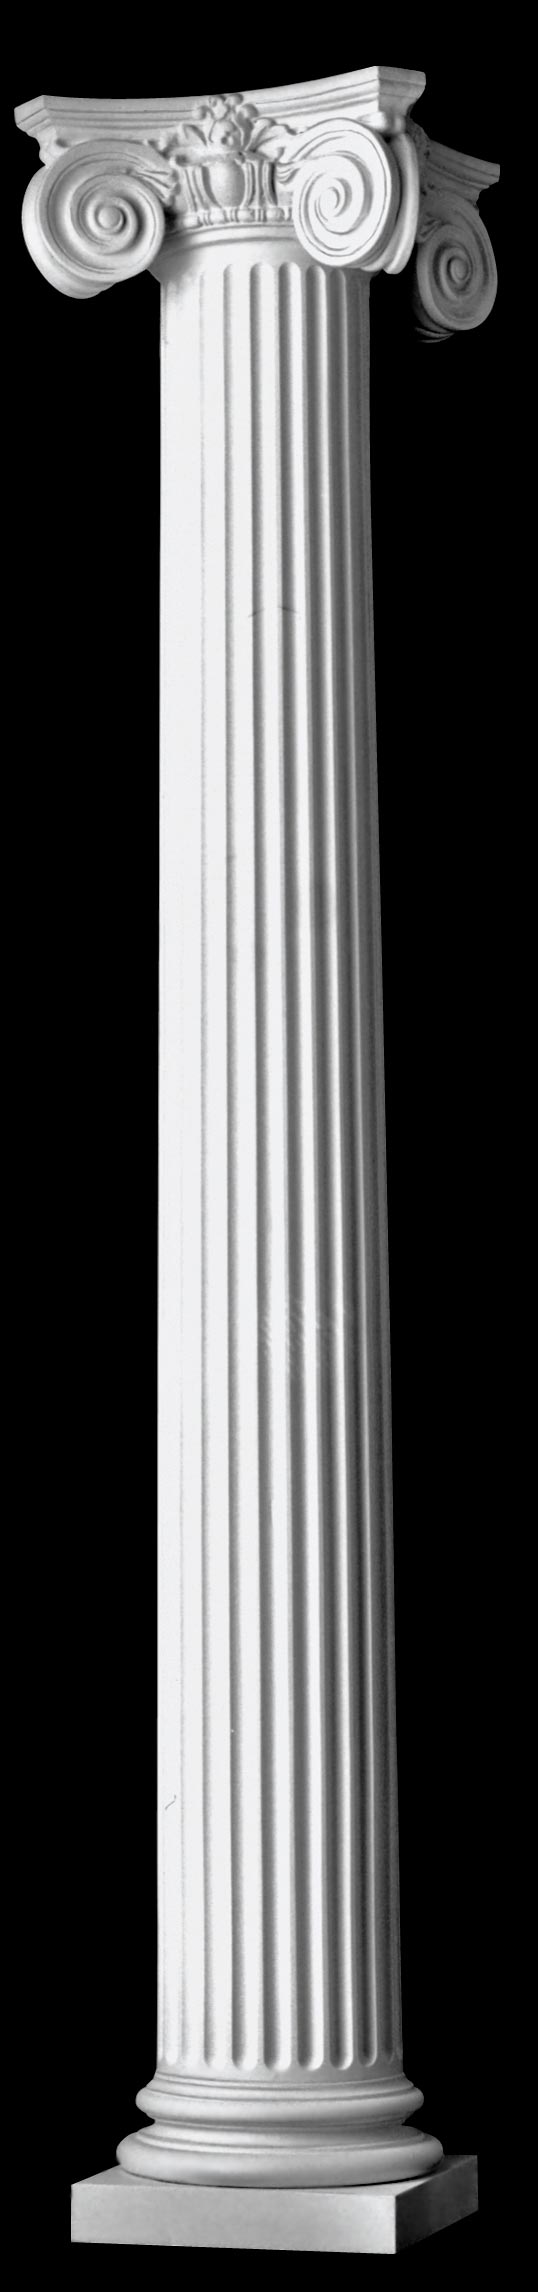 Fluted Tapered Scamozzi Wood Columns Architectural